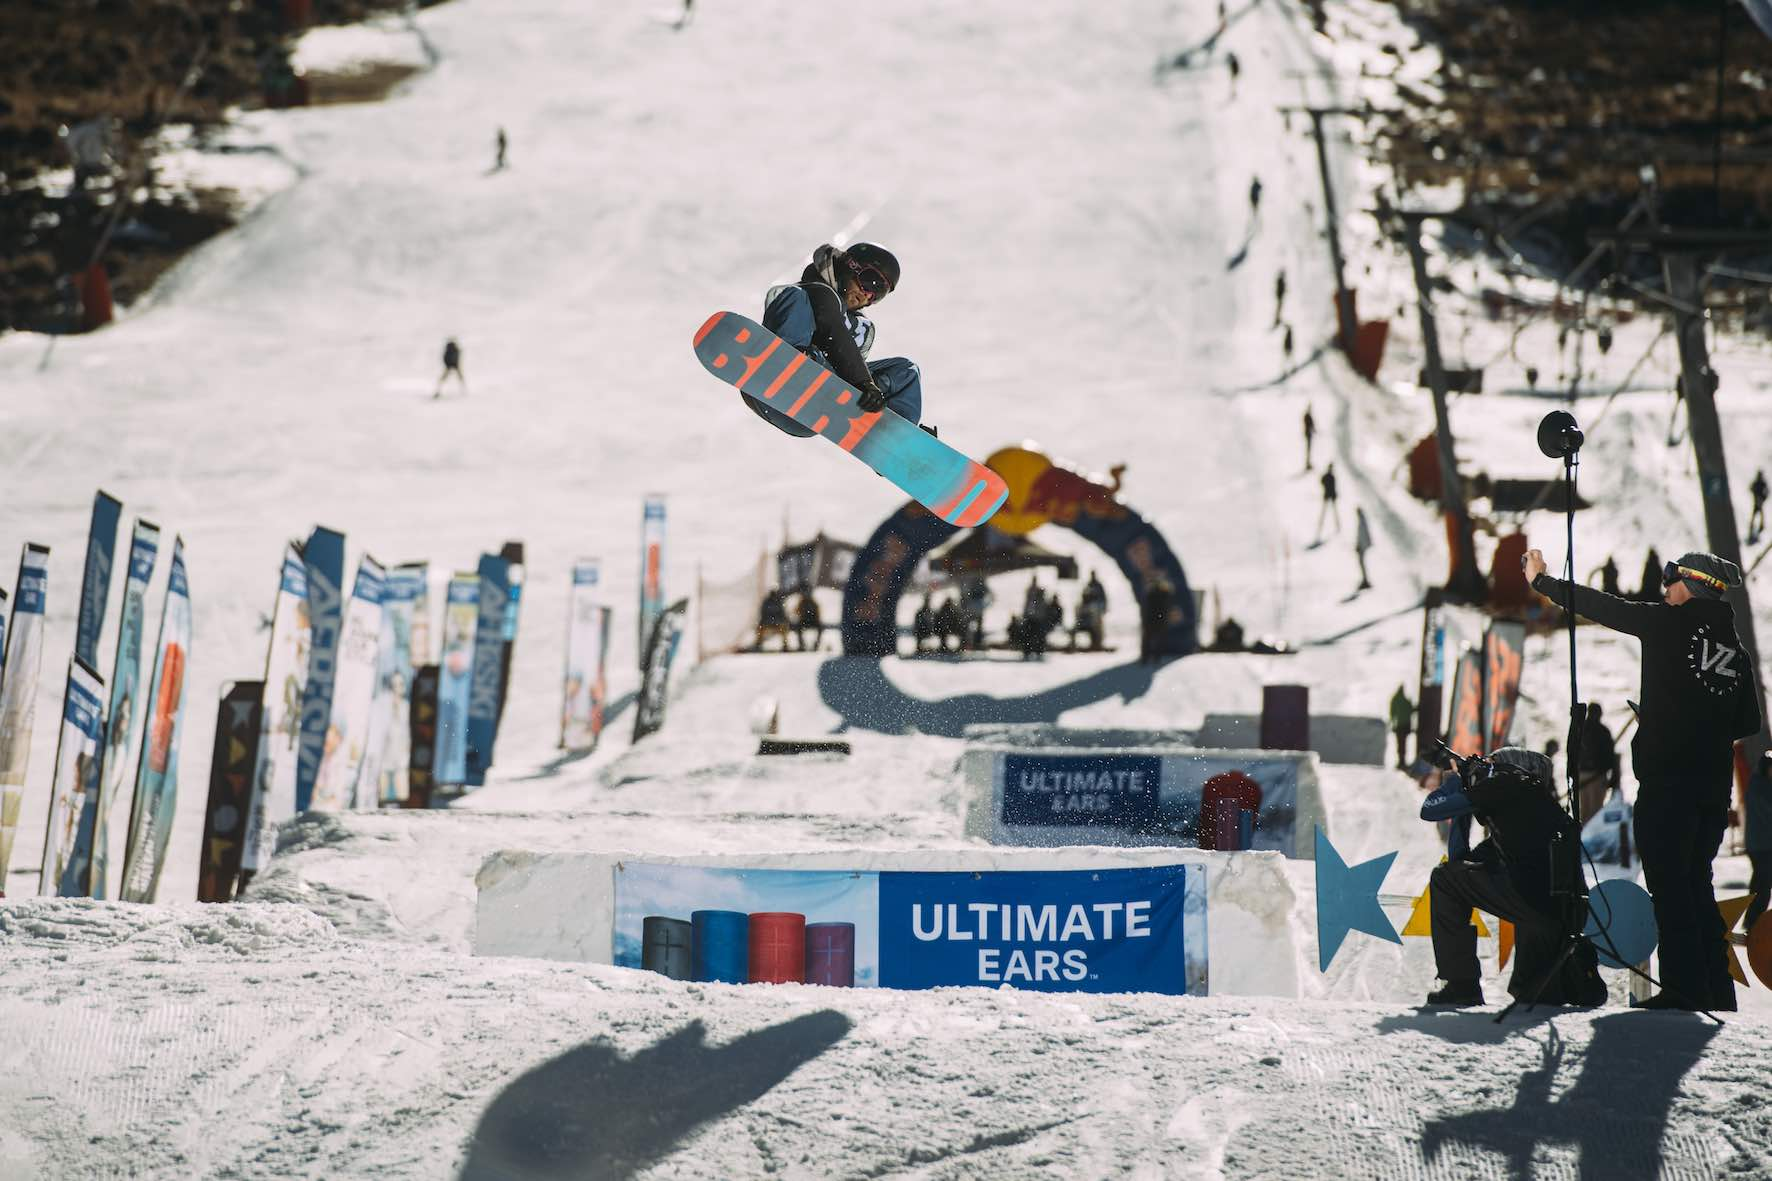 Rueben Storbeck snowboarding in the 2019 2019 Ultimate Ears Winter Whip Snowboard and Ski Festival